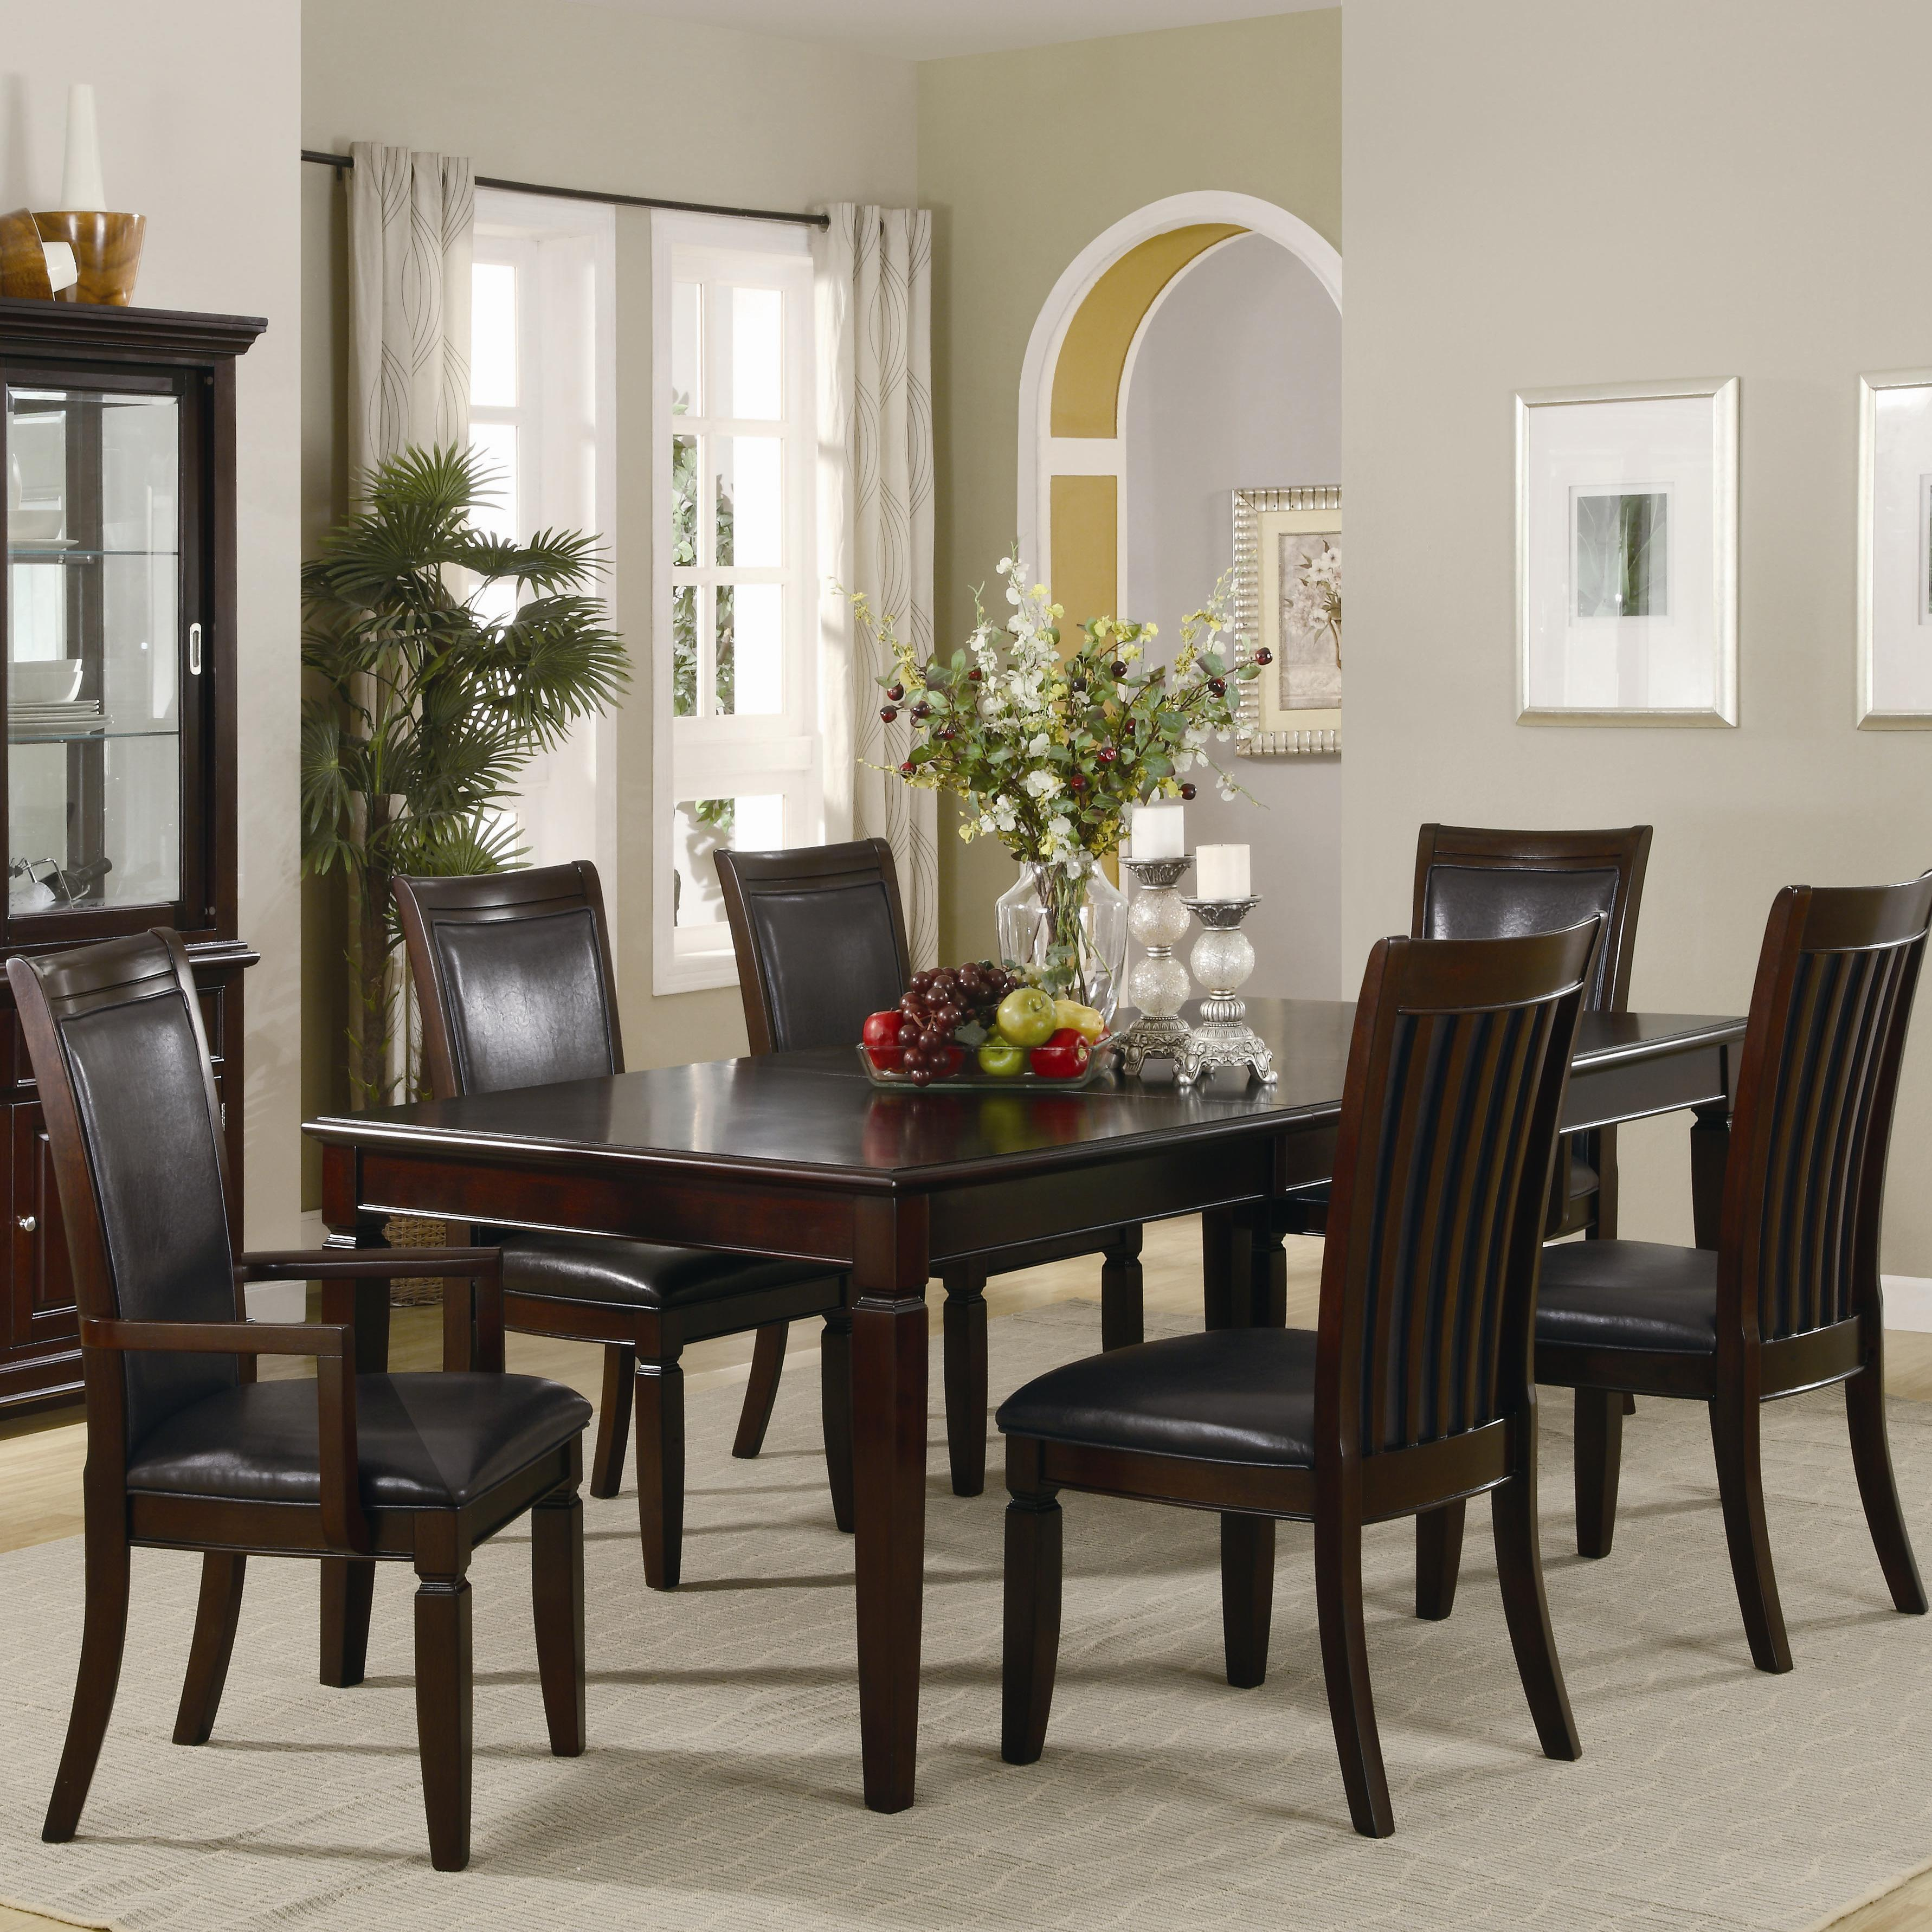 Ramona formal rectangular table w/ arm and side chairs